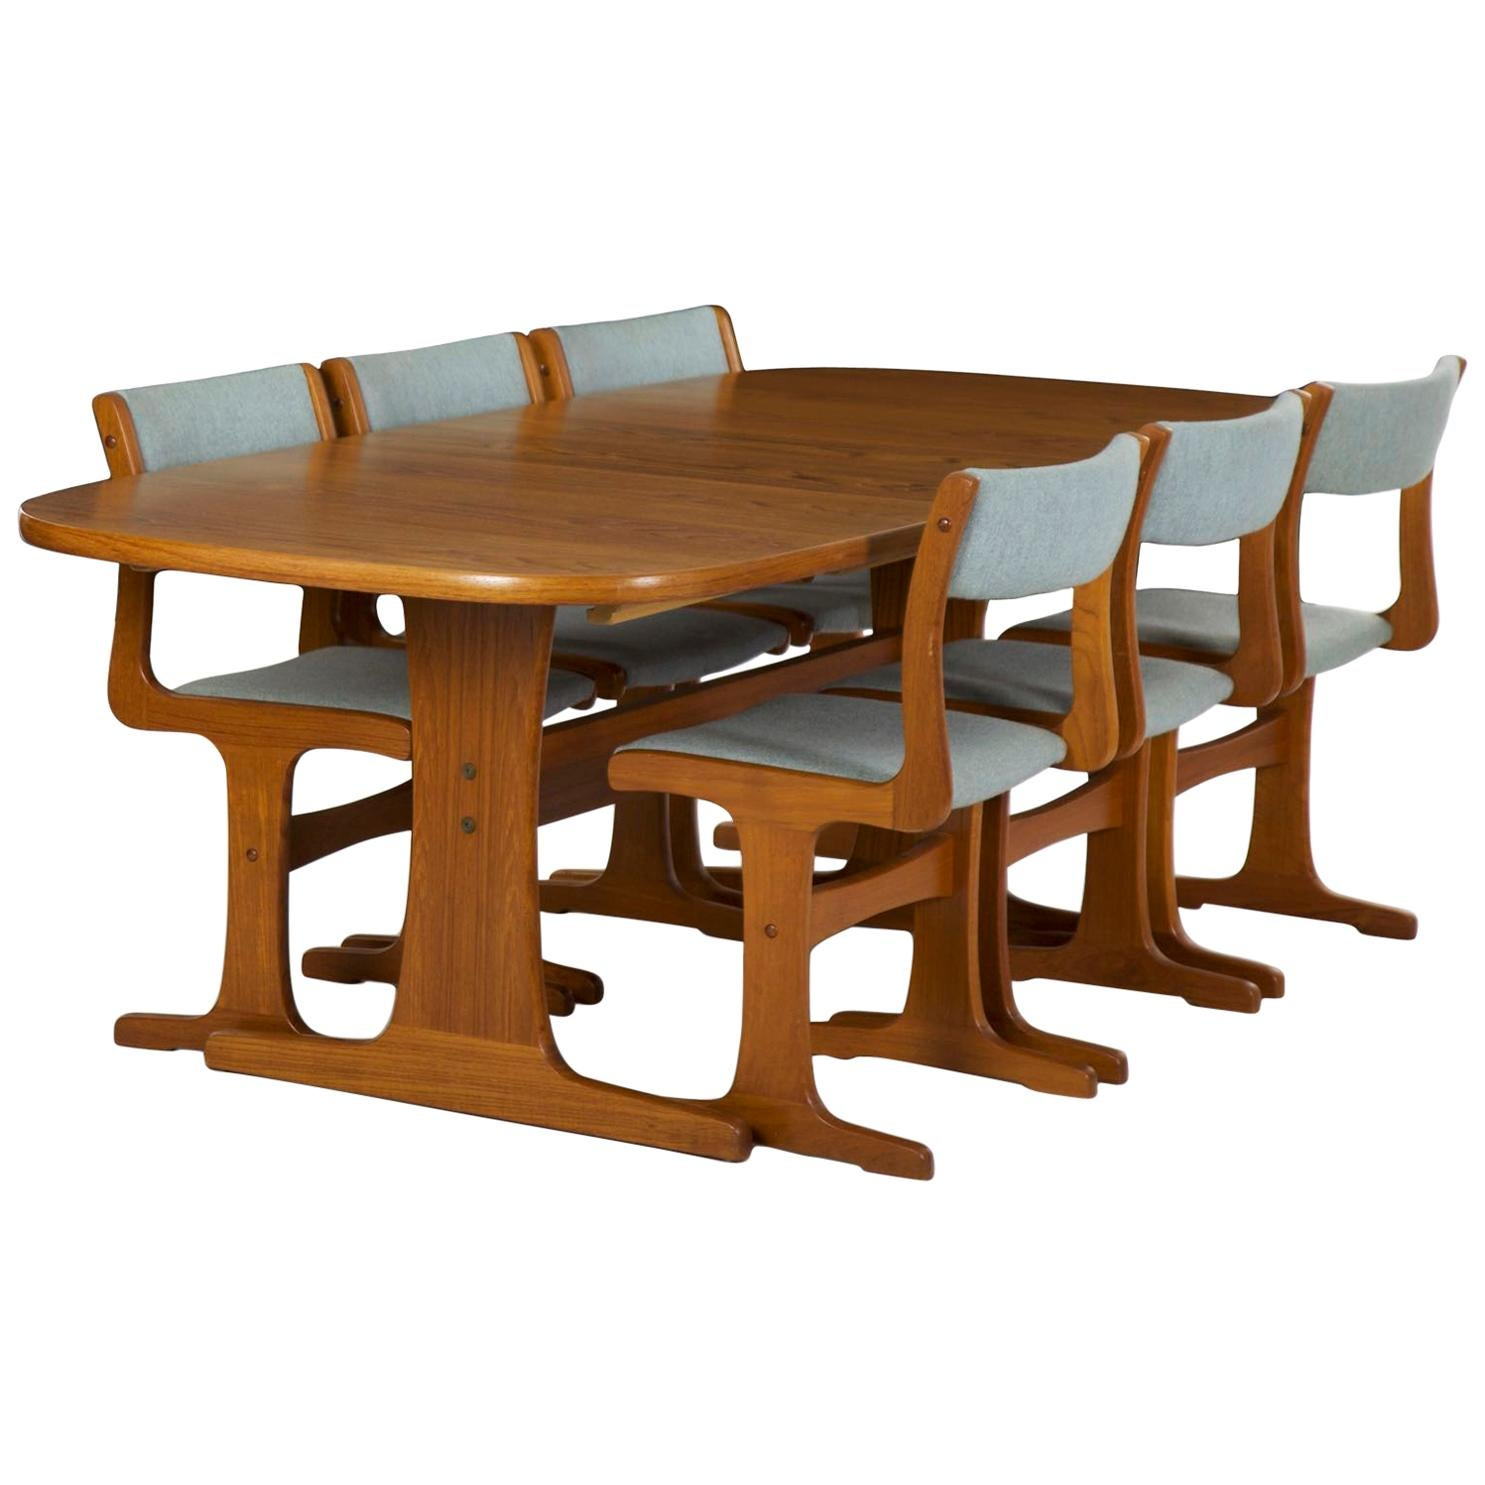 Genial Danish Midcentury Set Of Six Chairs And Trestle Dining Table By Gangso  Møbler